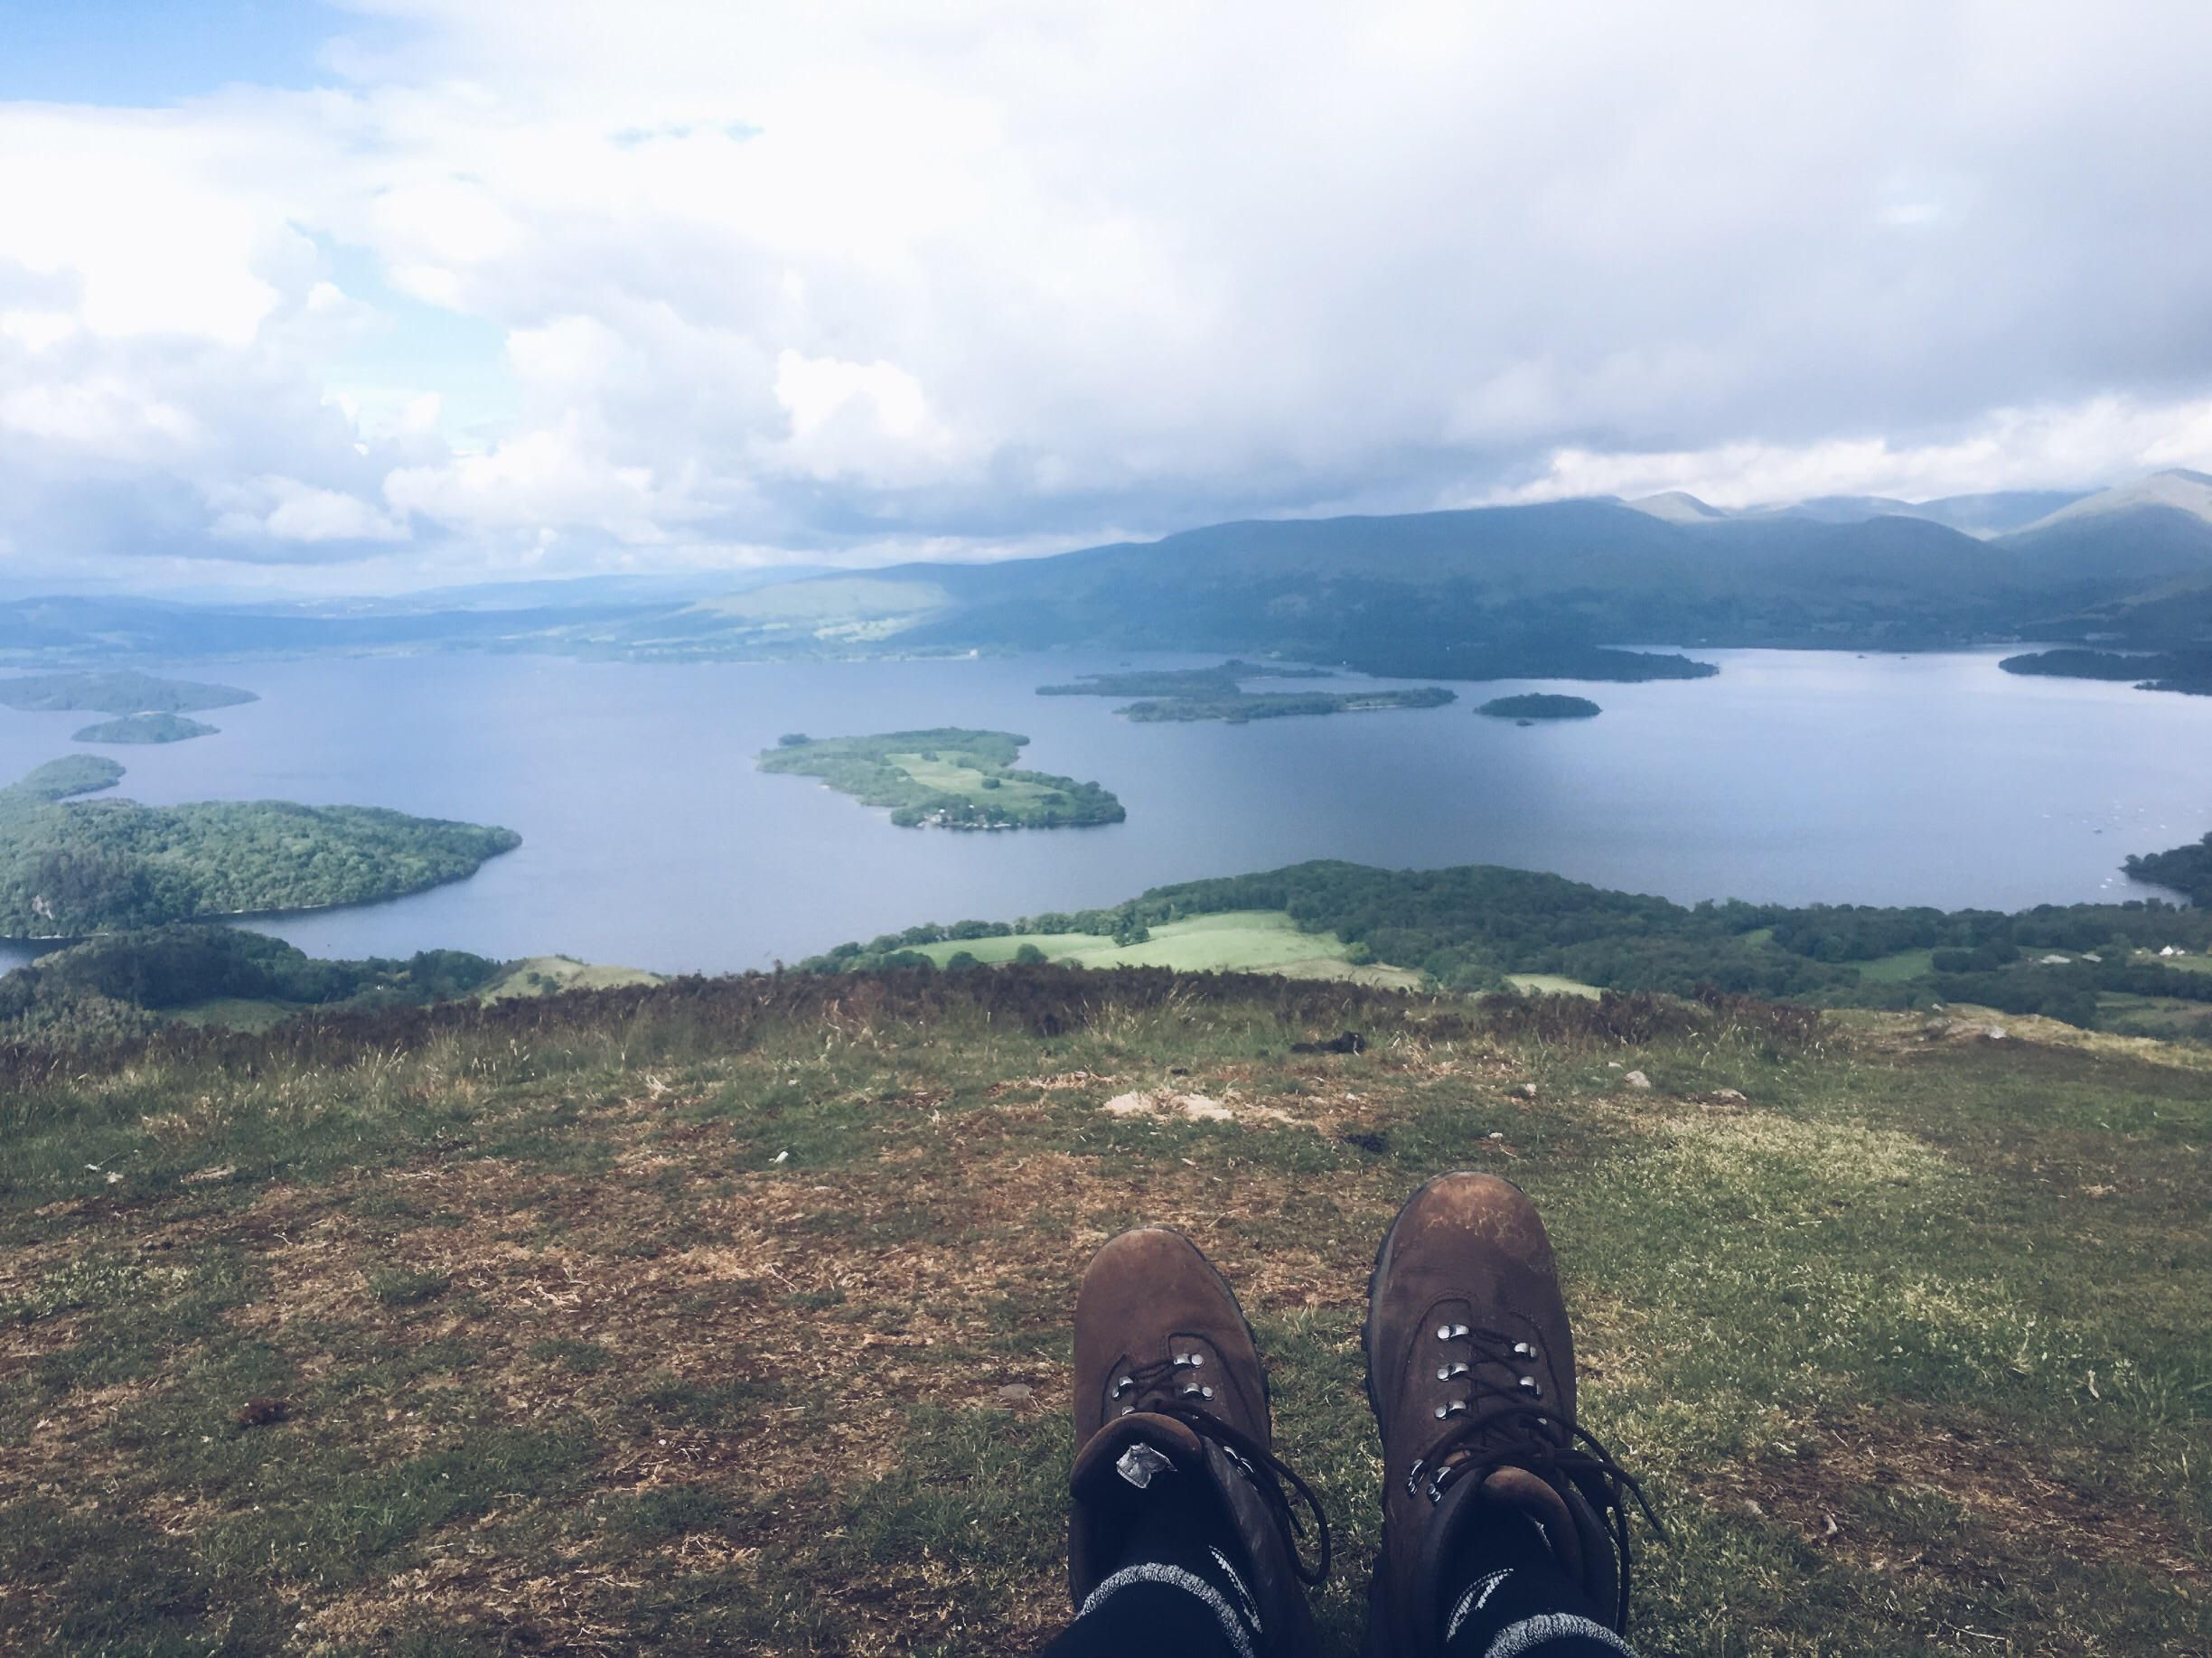 Loch Lomond Scotland #hiking #camping #outdoors #nature #travel #backpacking #adventure #marmot #outdoor #mountains #photography #lochlomond